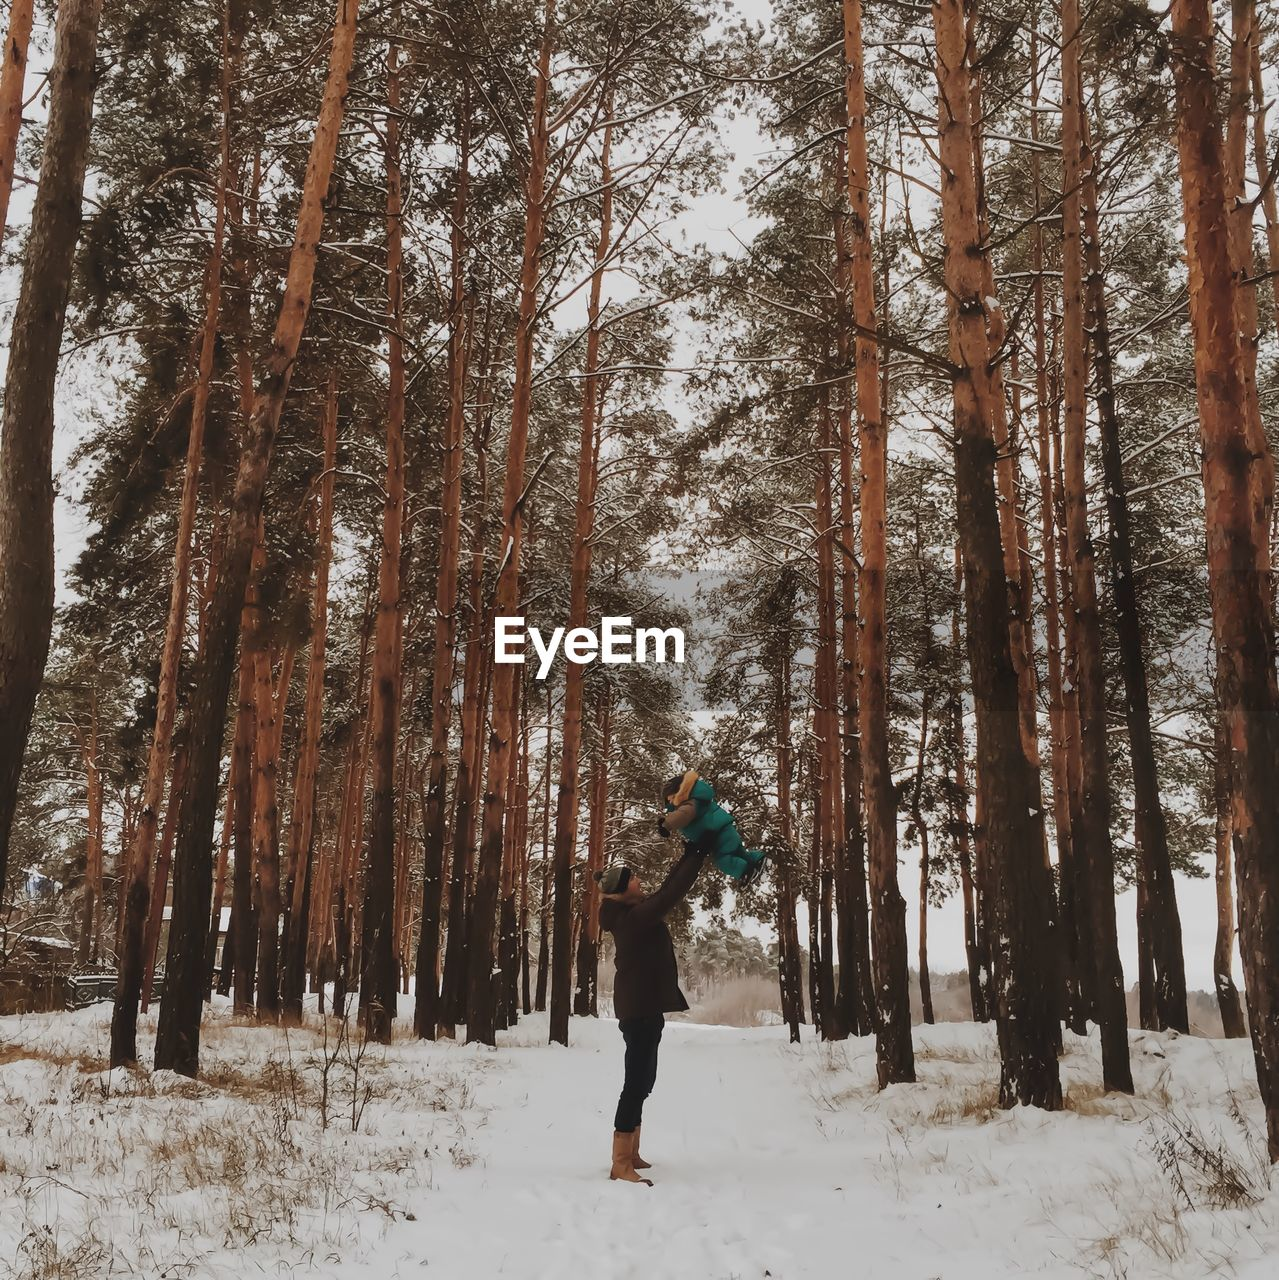 snow, tree, winter, cold temperature, land, forest, plant, tree trunk, trunk, one person, nature, beauty in nature, full length, leisure activity, real people, covering, lifestyles, field, day, warm clothing, woodland, outdoors